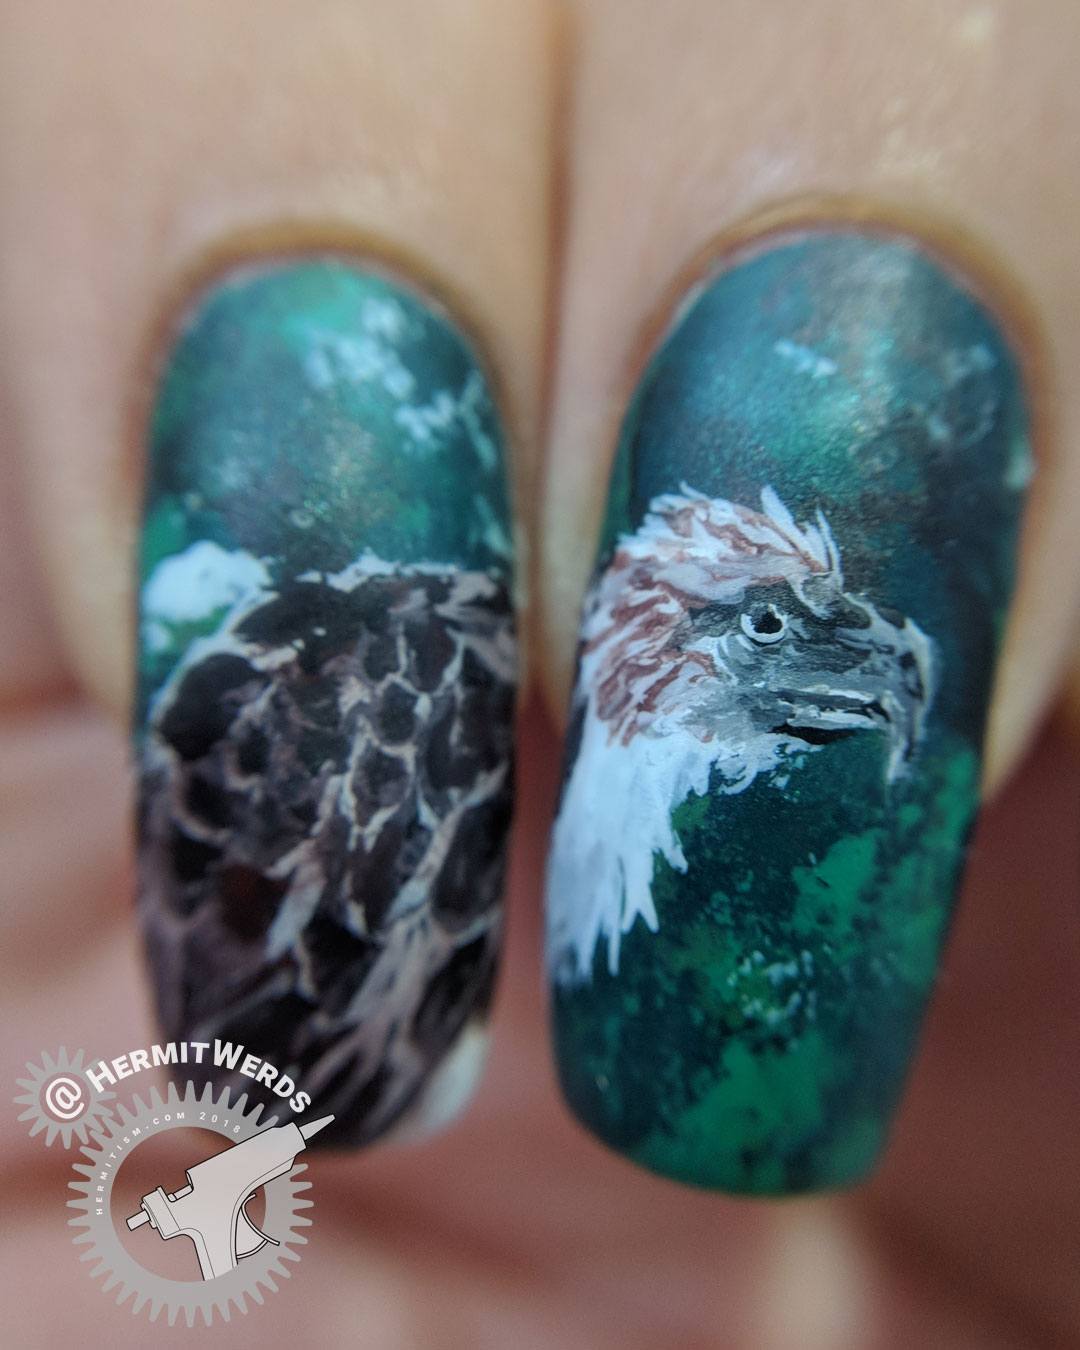 Philippine Monkey-eating Eagle (macro) - Hermit Werds - freehand nail art of a Philippine Monkey-eating Eagle on a dark green background with fleeing monkey silhouettes